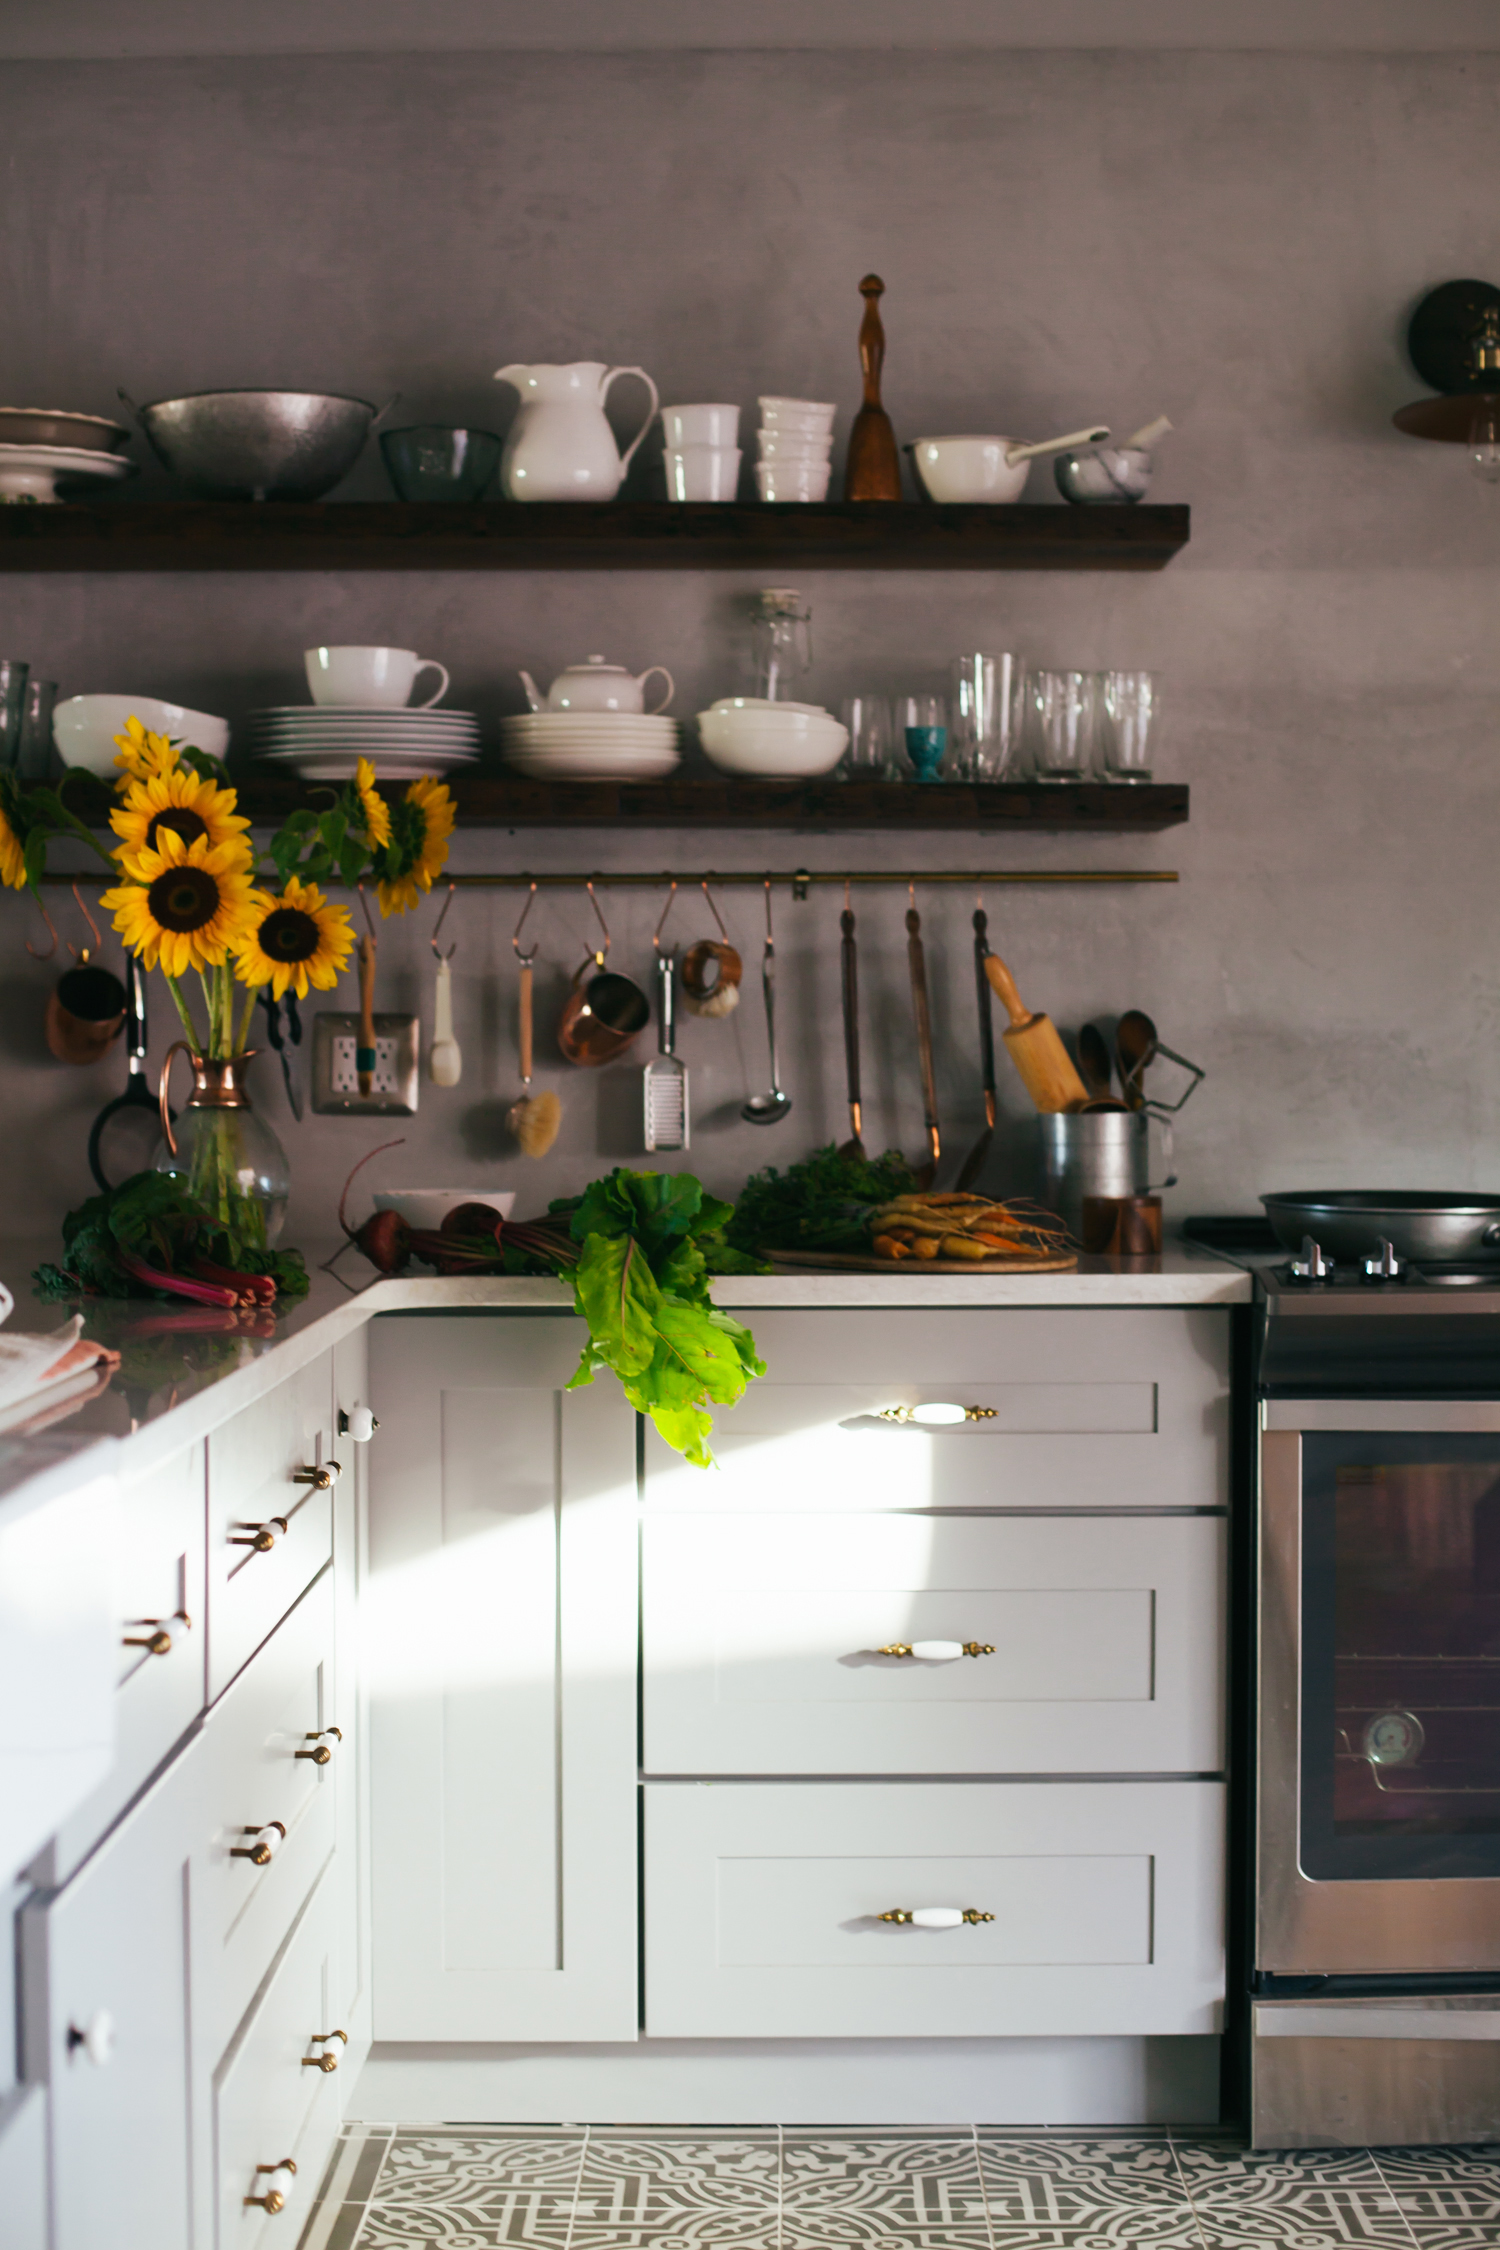 Selling Our Home with My Dream Kitchen - Golubka Kitchen